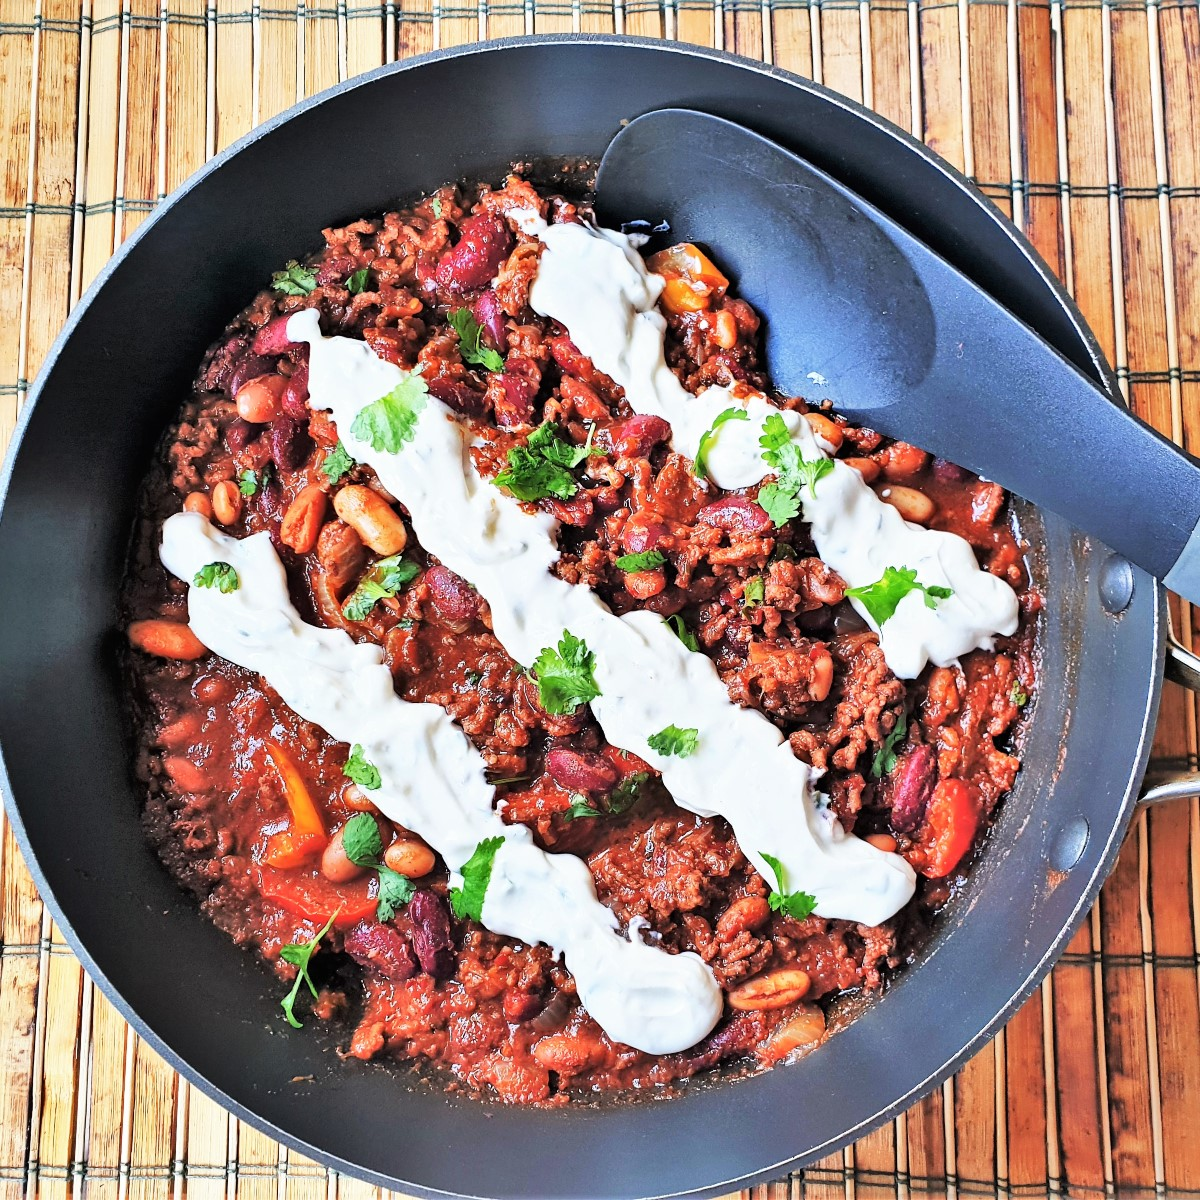 A pan of chilli with 3 rows of sour cream piped on top.